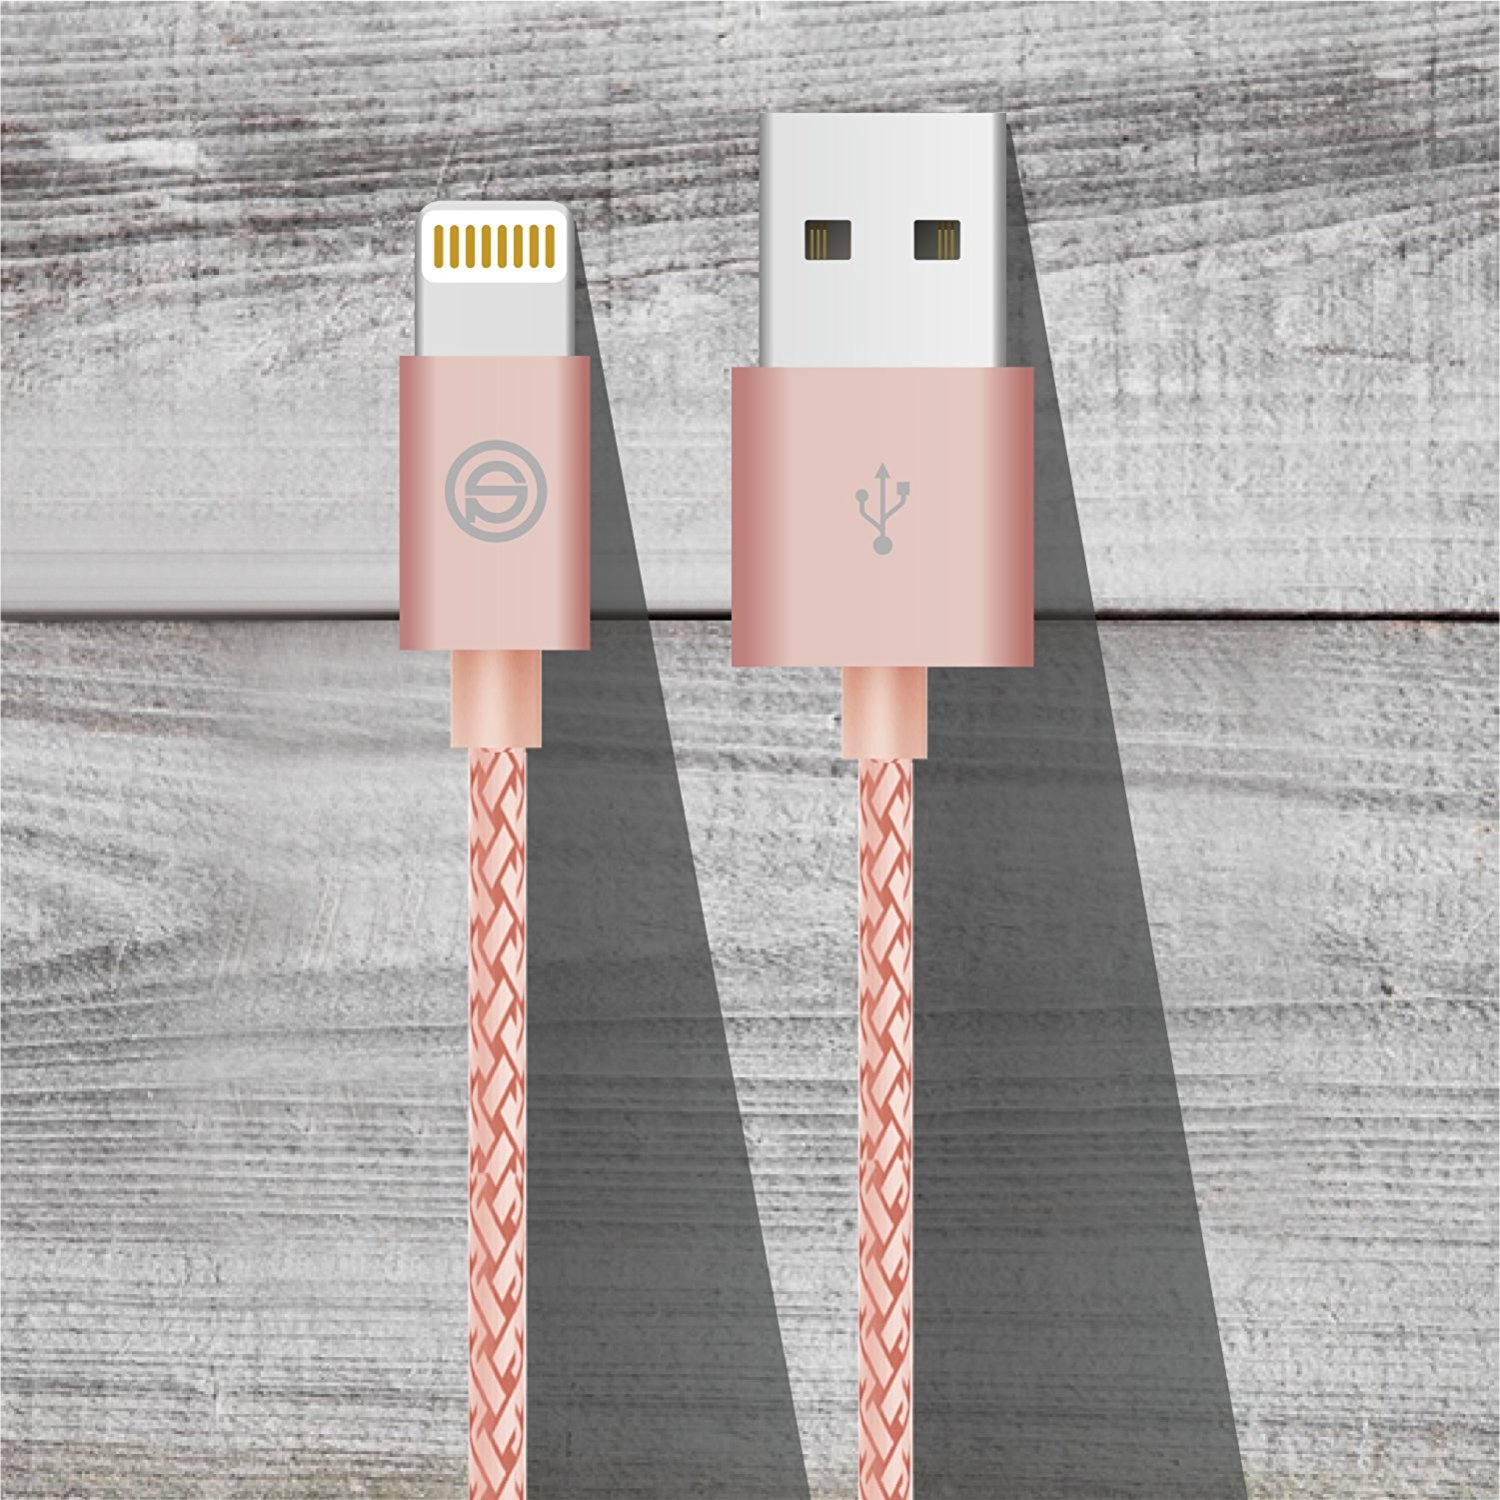 OPSO MFi Certified 1m/3.3ft Nylon Braided Lightning To USB Charging Cable For iPhone 7/7 Plus iPad